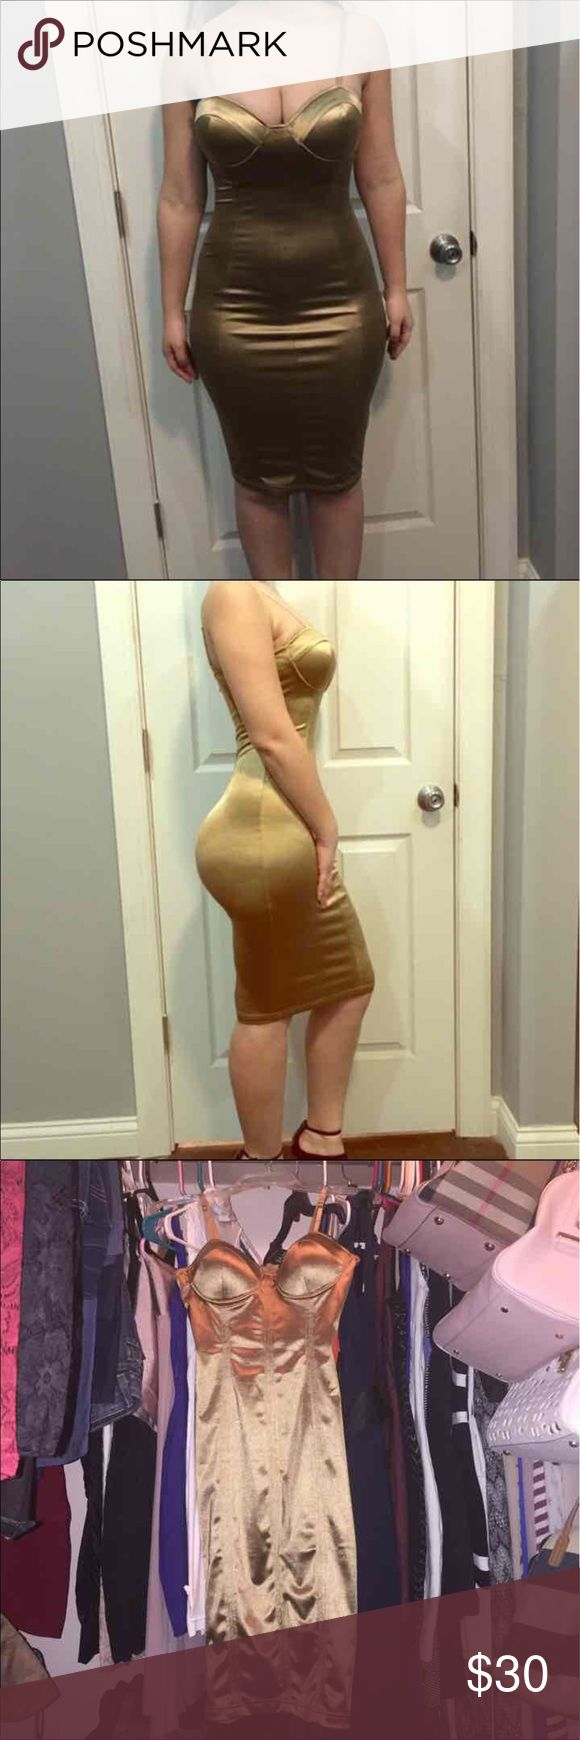 Gold bodycon dress Got all lot of compliments in this dress . Shows every curve in your body !!! Super sexy for any occasion. Wore a bracelet that got some snags on the dress other than that you can't tell while it's on , only if you pay close attention to it . Bundle and save . Not listed brand just for exposure Guess by Marciano Dresses Midi